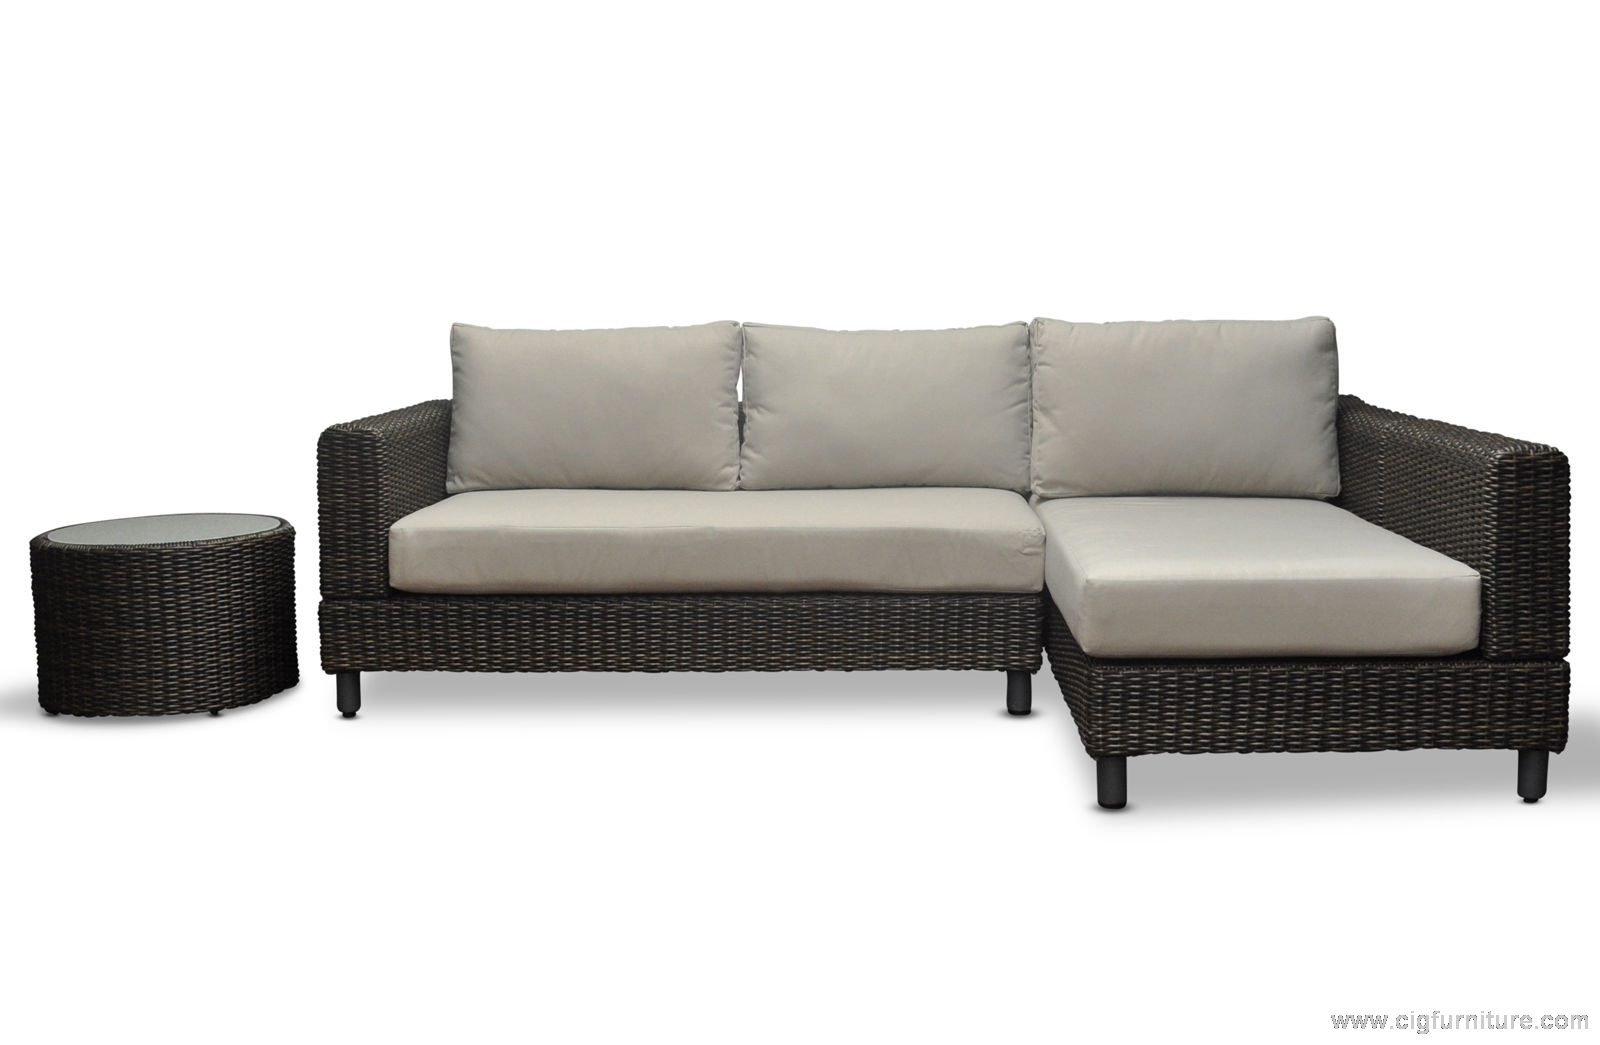 Large Modular Lounge Wicker Outdoor Modular Corner Sofa Chaise Patio Lounge